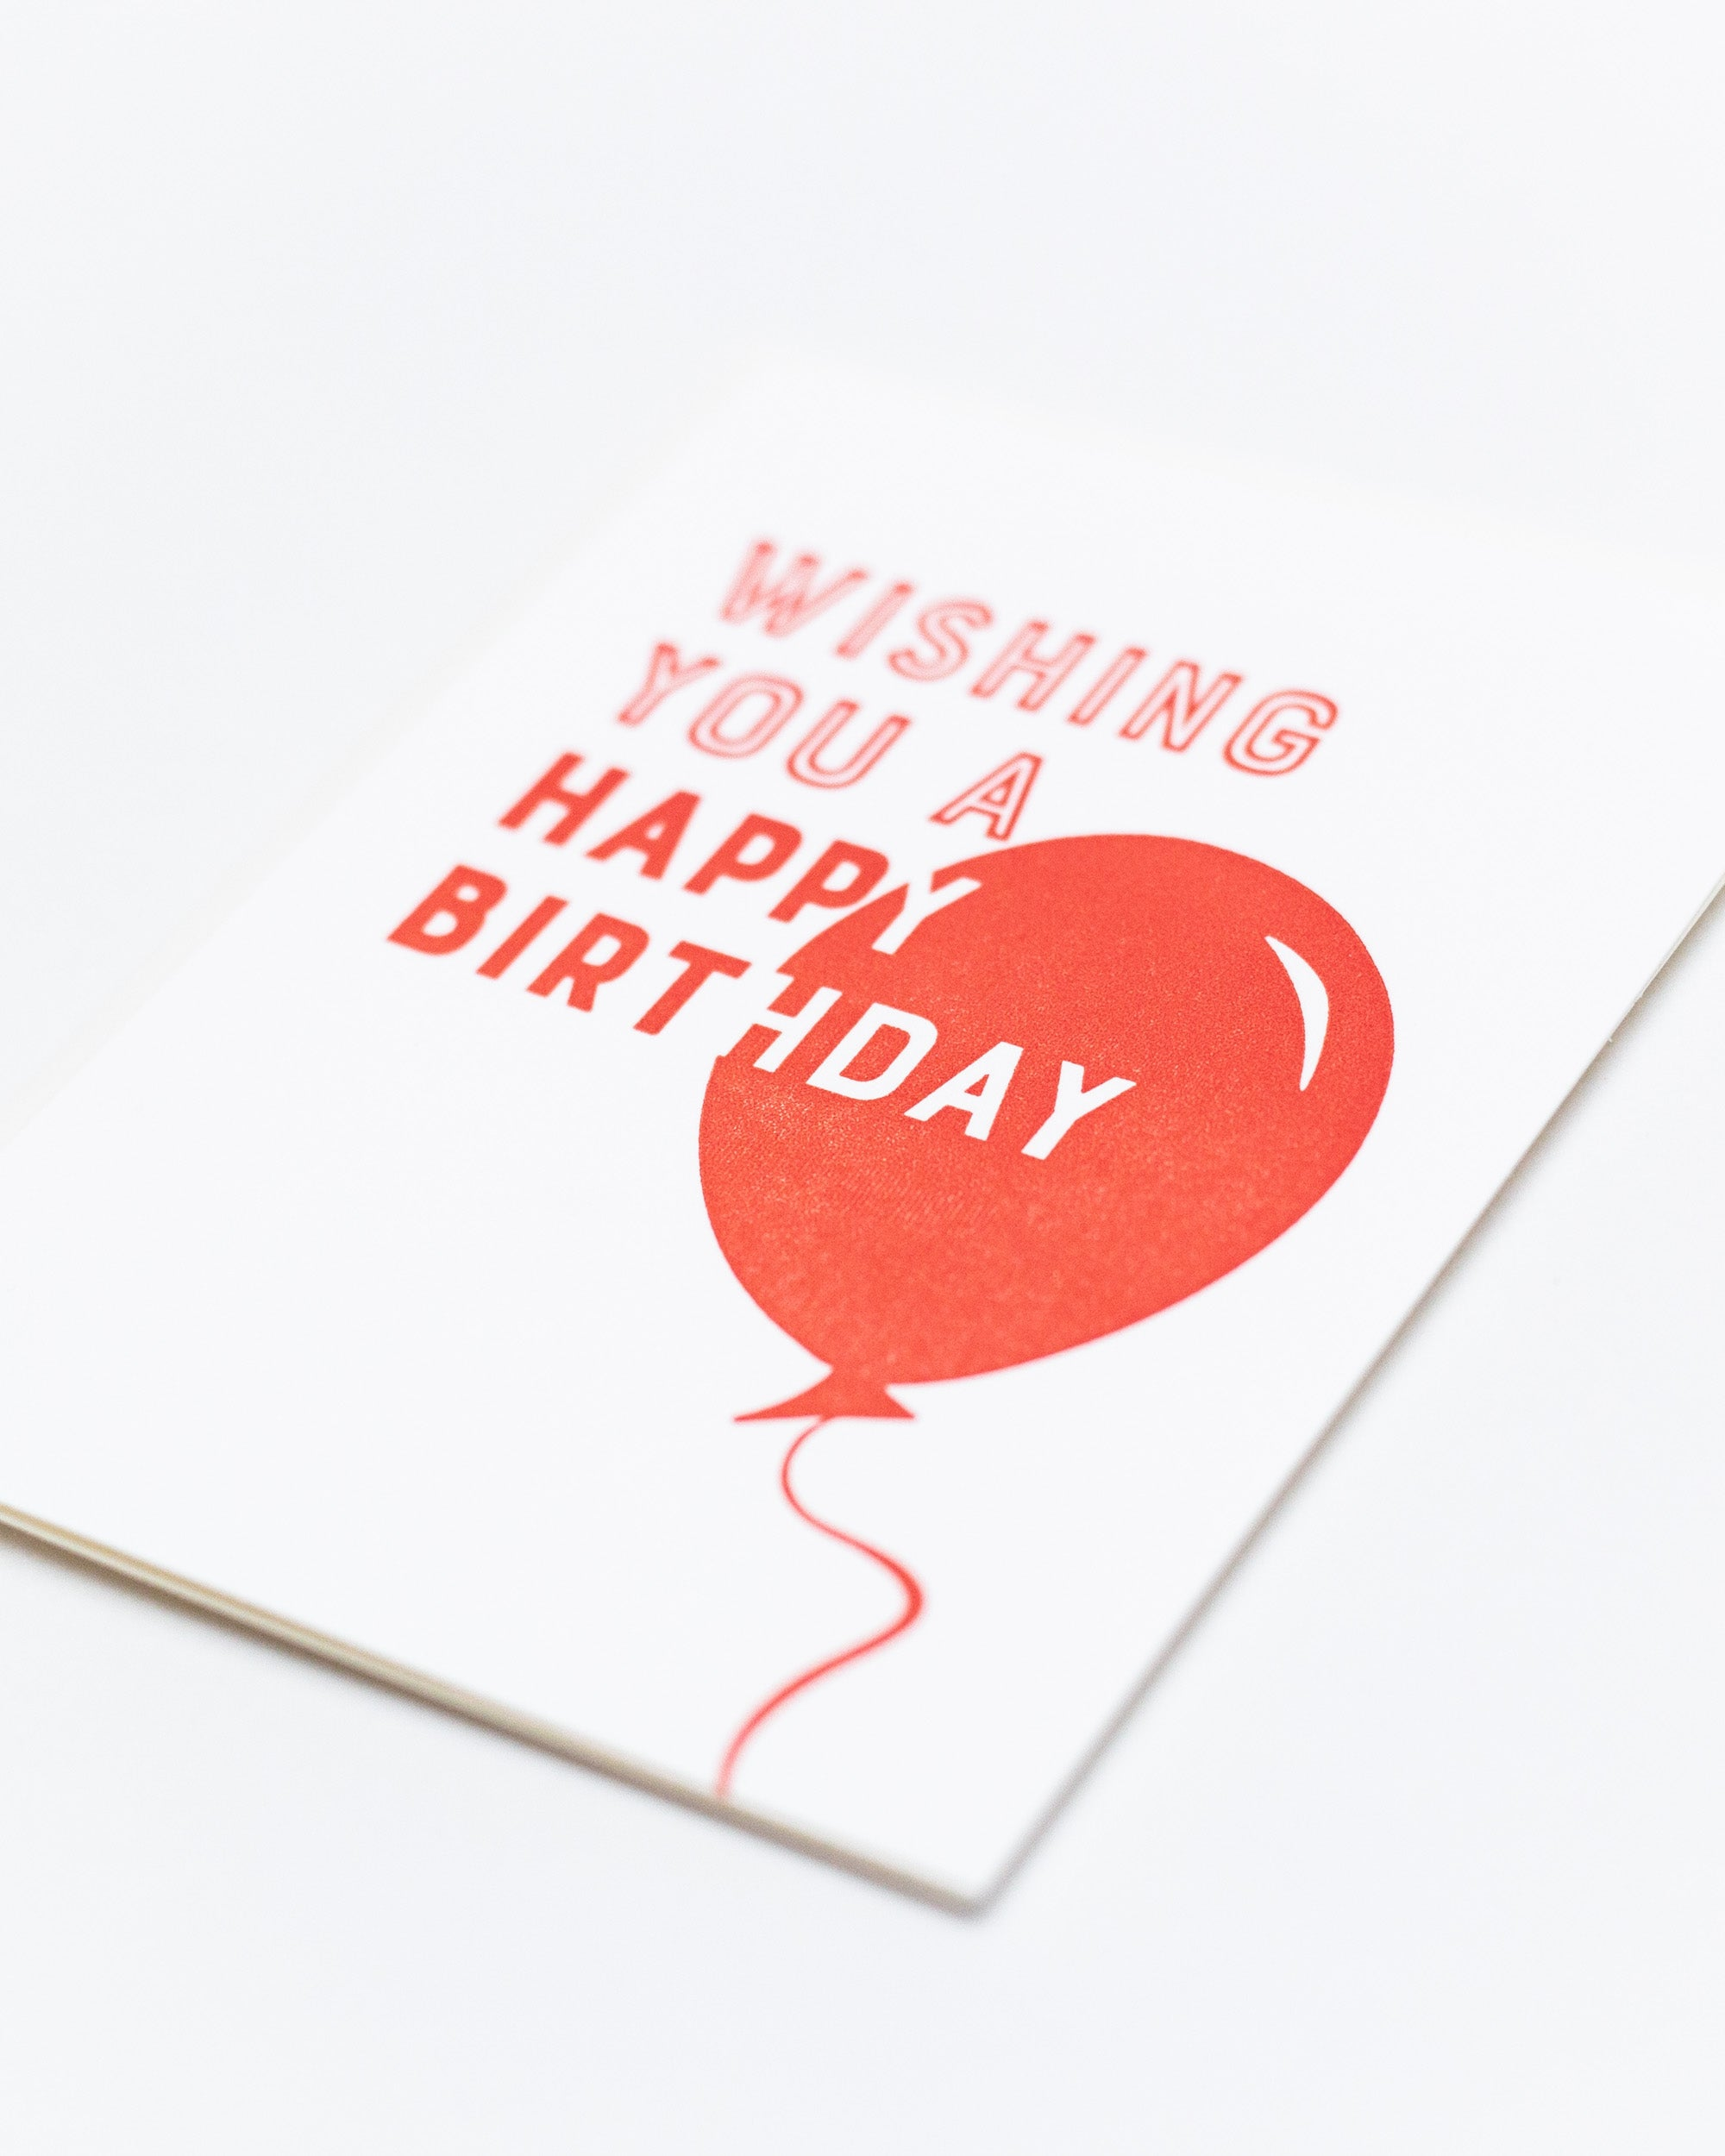 Wishing You a Happy Birthday Card